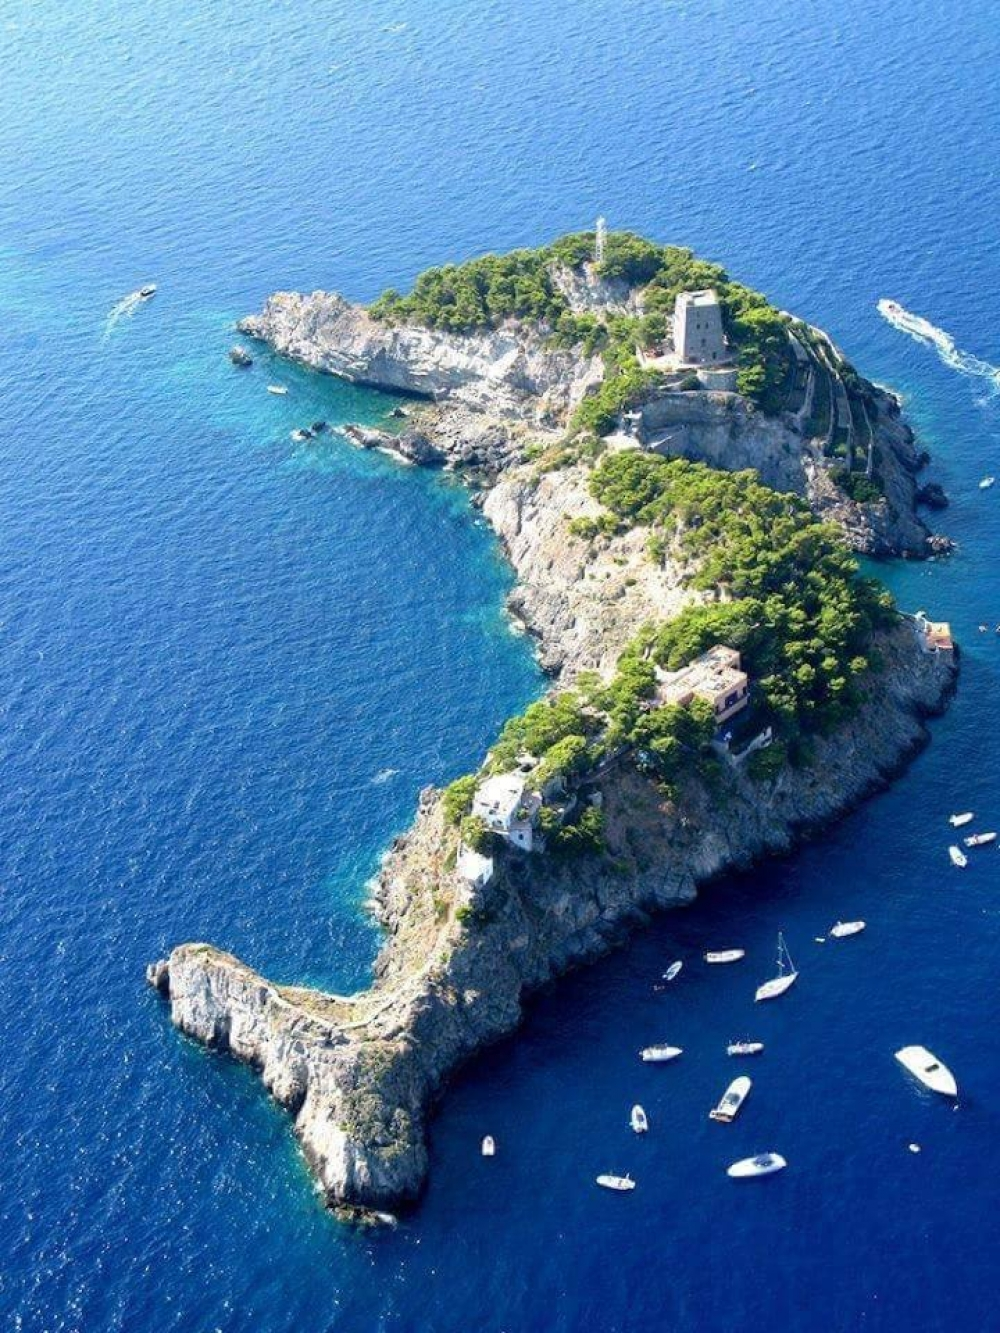 Li Galli Islands, Amalfi Coast.